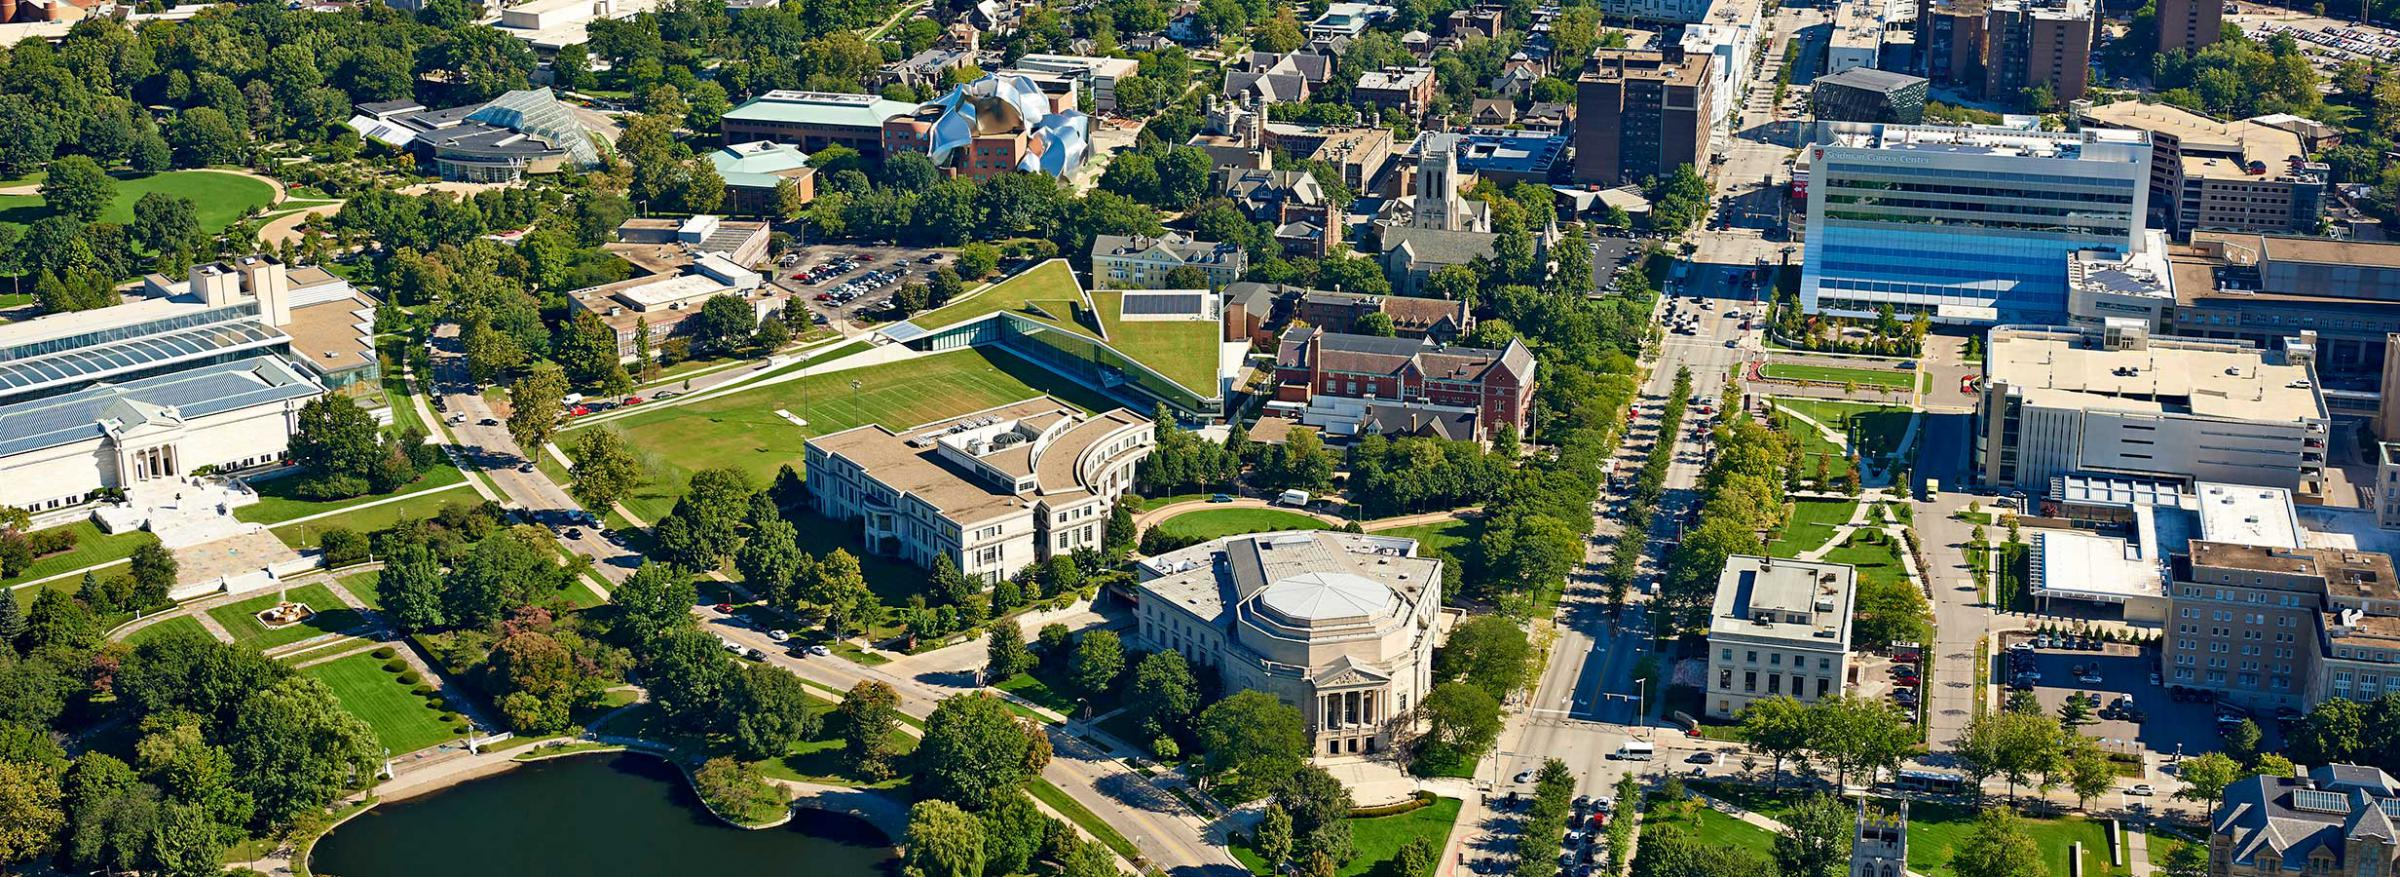 Arial photo of the CWRU campus